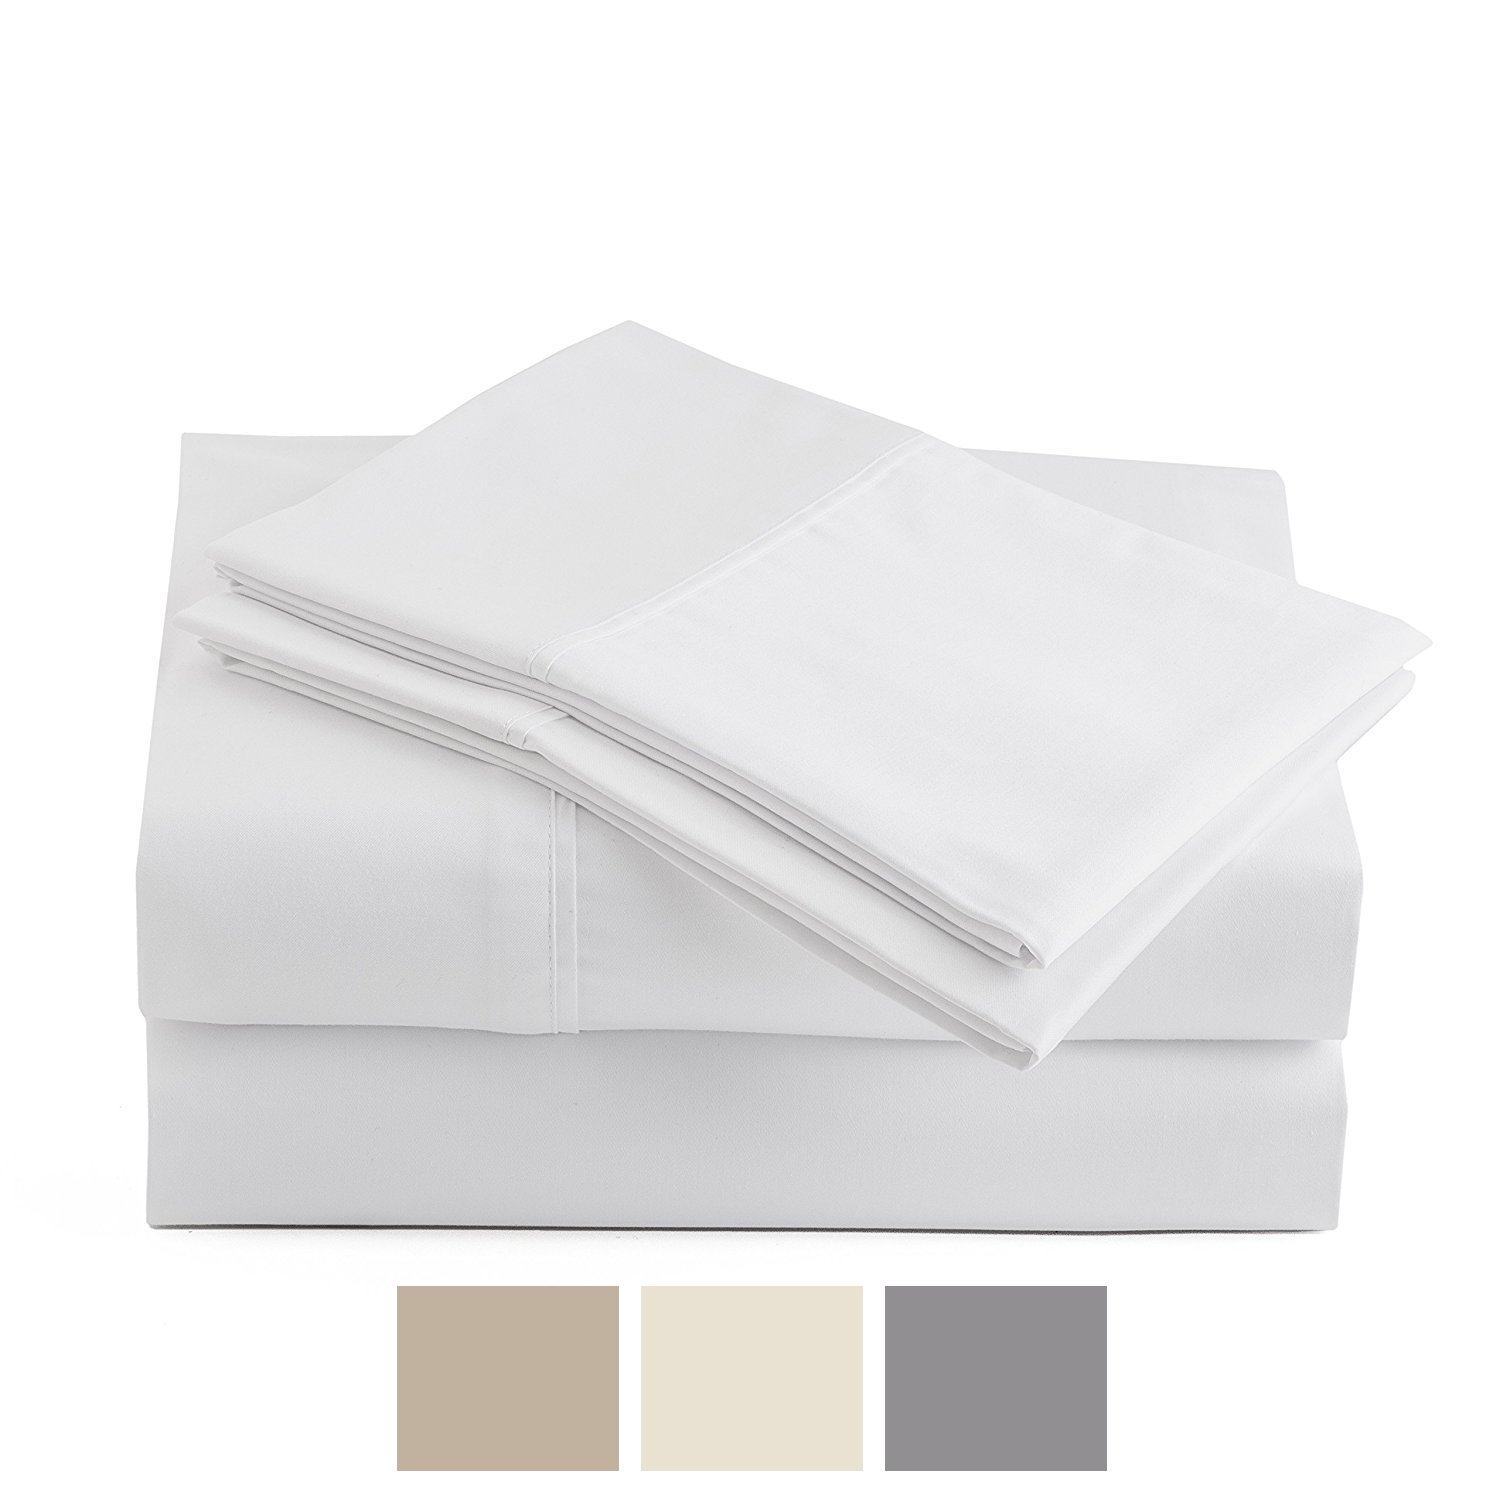 Peru Pima Temperature Regulating Sheets - 600 Thread Count - 100% Peruvian Pima Cotton - Sateen - Bed Sheet Set (Twin, White)